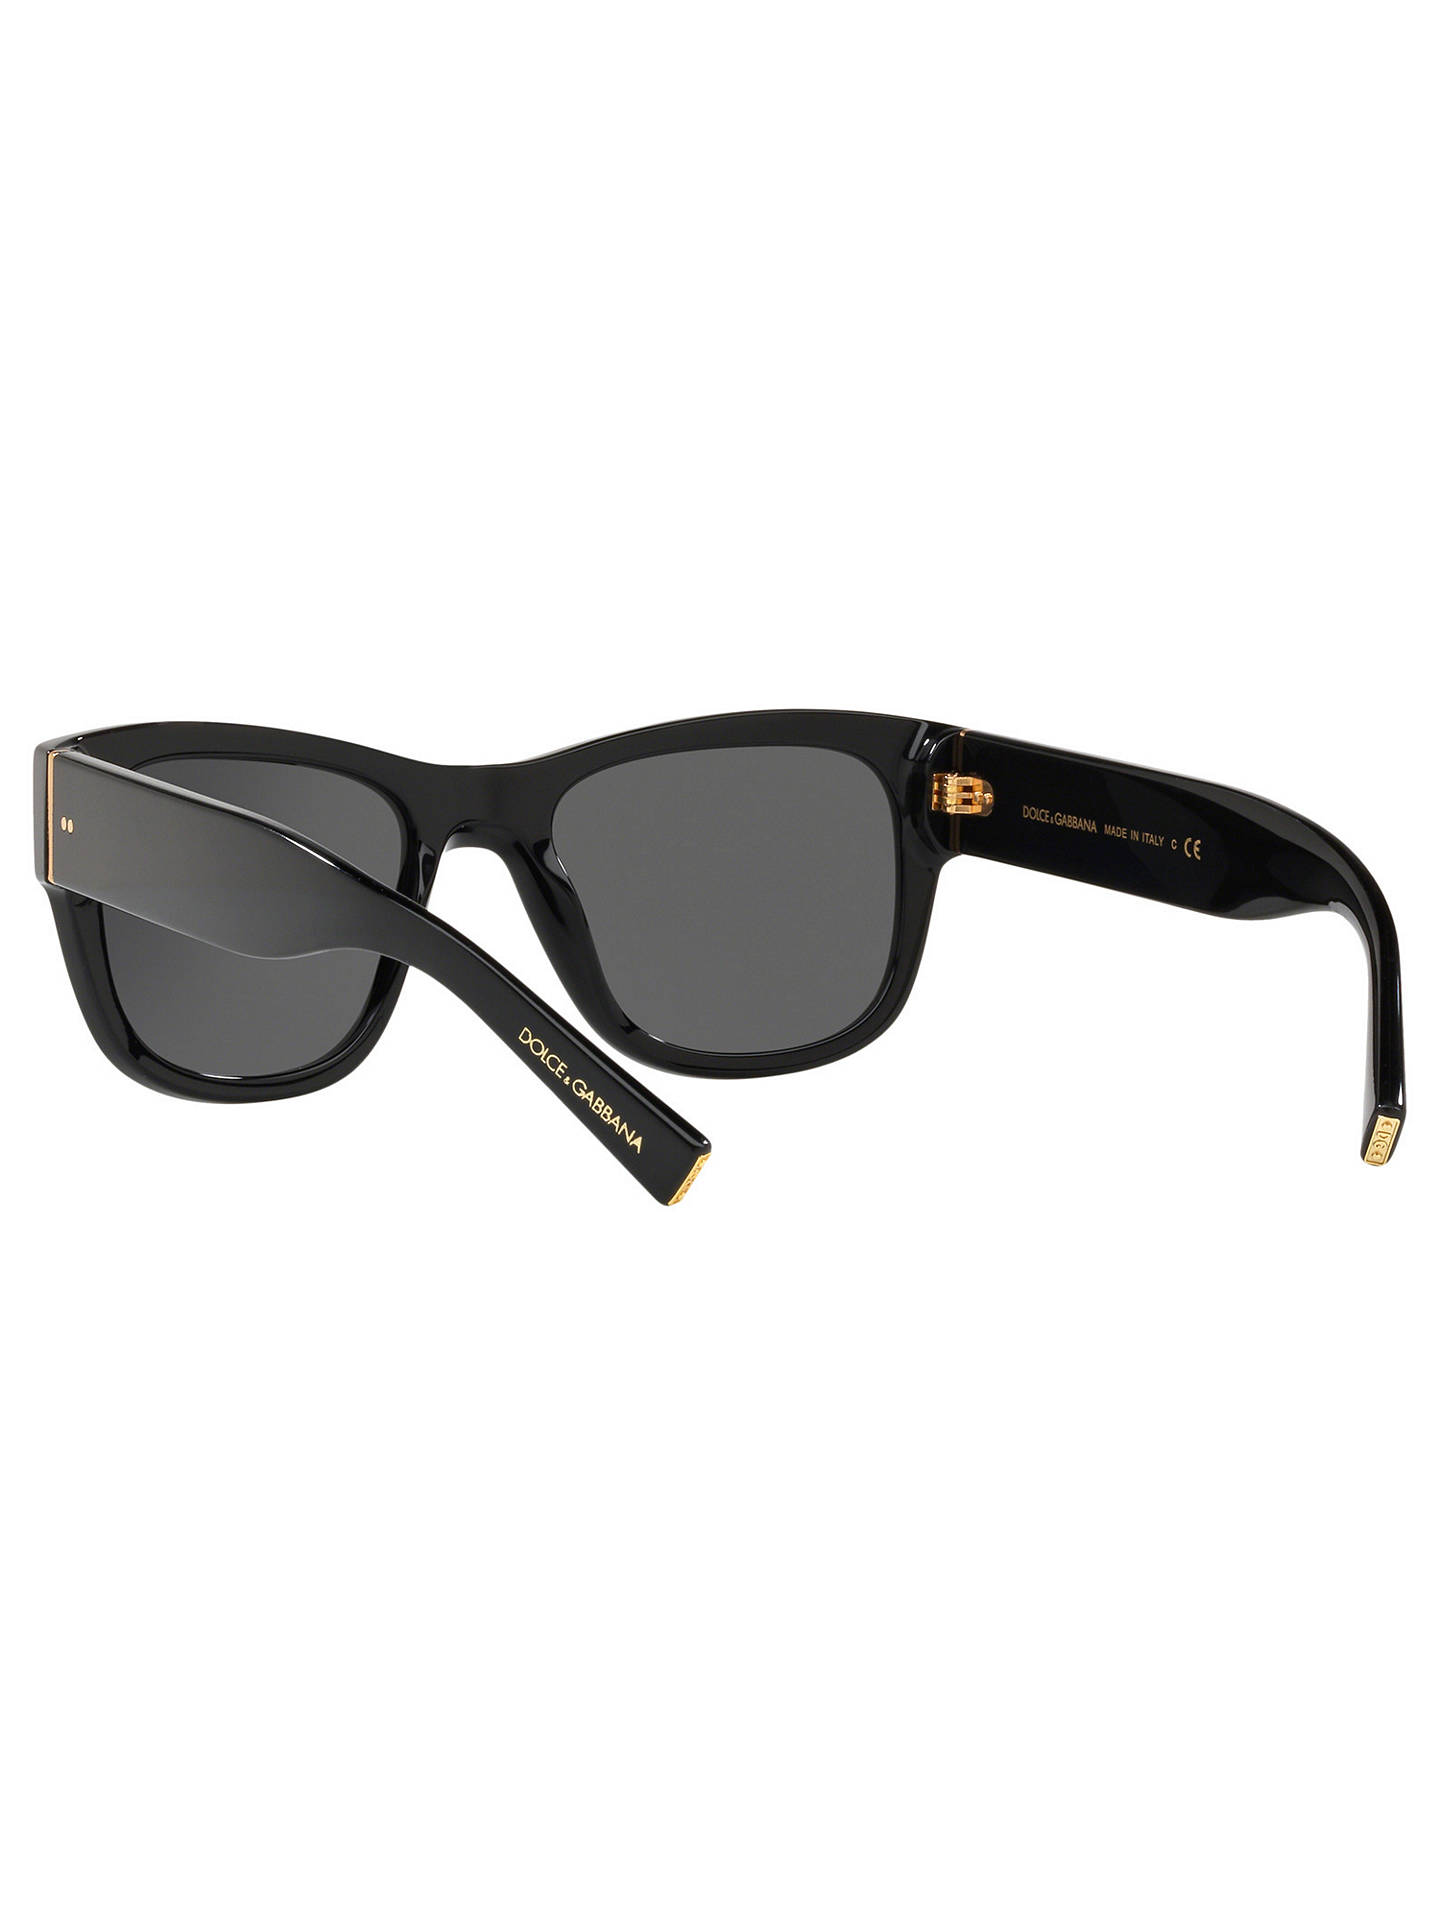 ff08fa3f2f9f ... Buy Dolce & Gabbana DG4338 Women's Square Frame Sunglasses, Black/Grey  Online at johnlewis ...